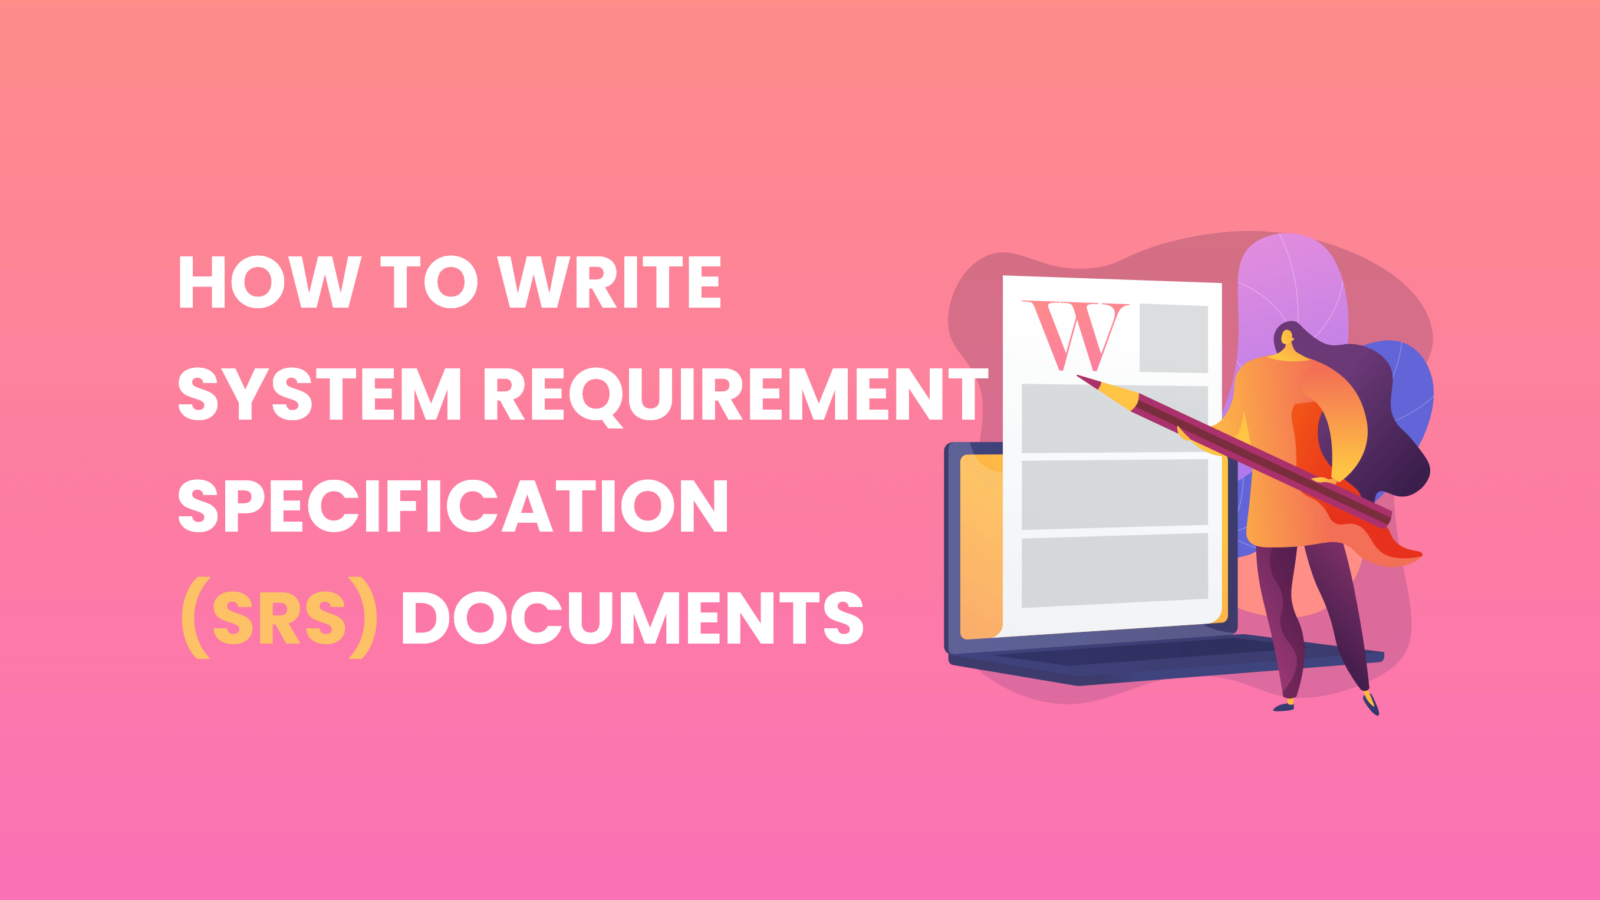 How to Write an SRS Document